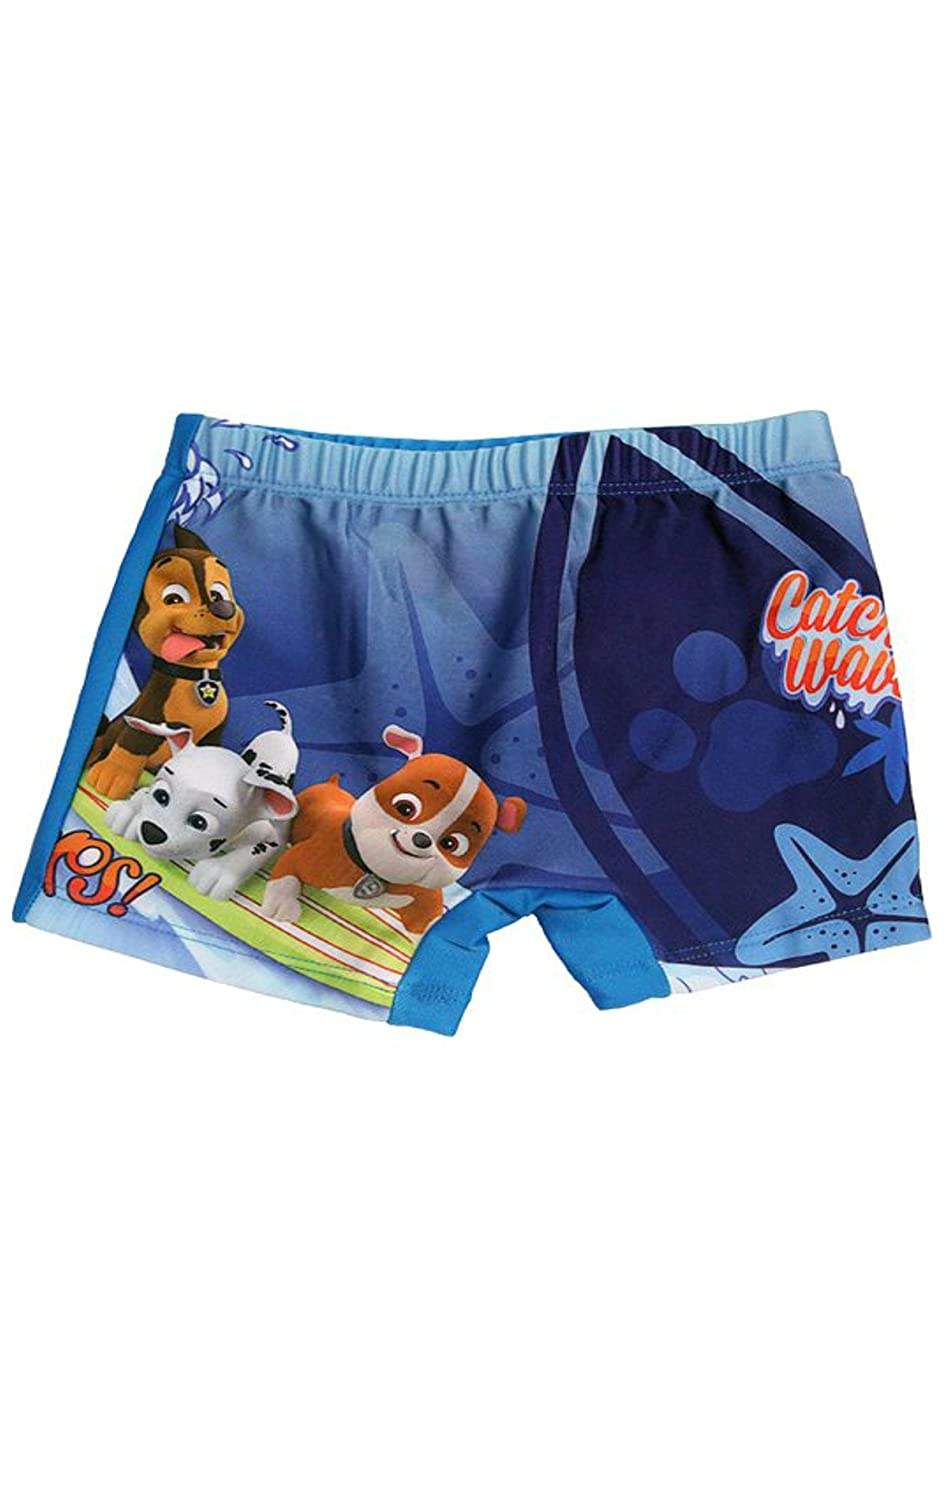 Boys Official Paw Patrol Catch the Waves Swimwear Swimming Shorts Age 3 to 8 Years